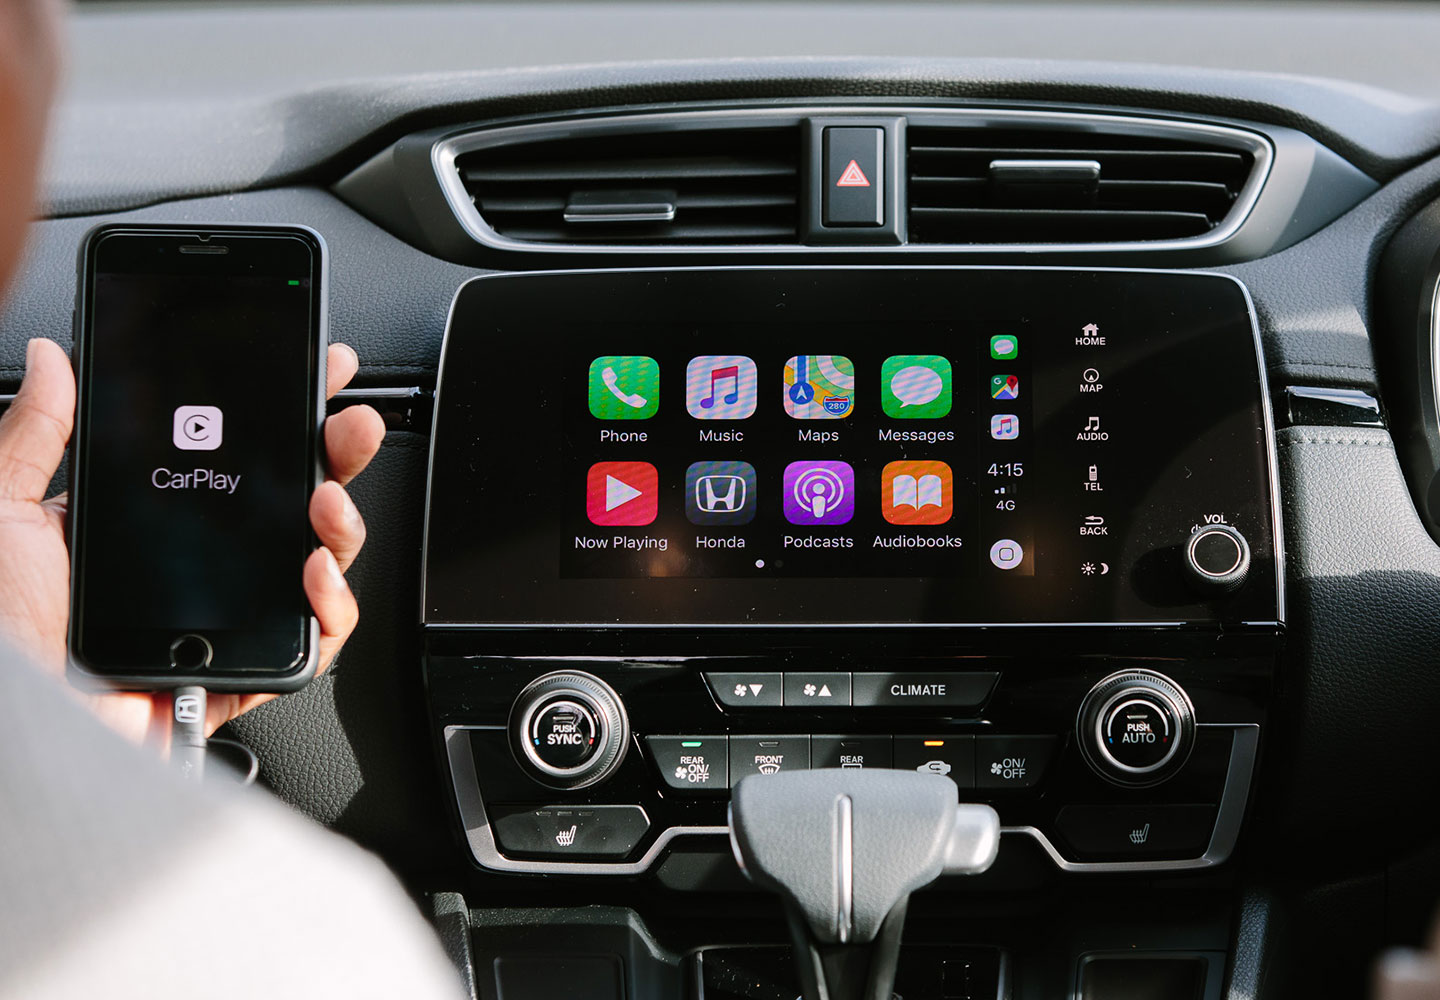 CR-V APPLE CARPLAY & ANDROID AUTO